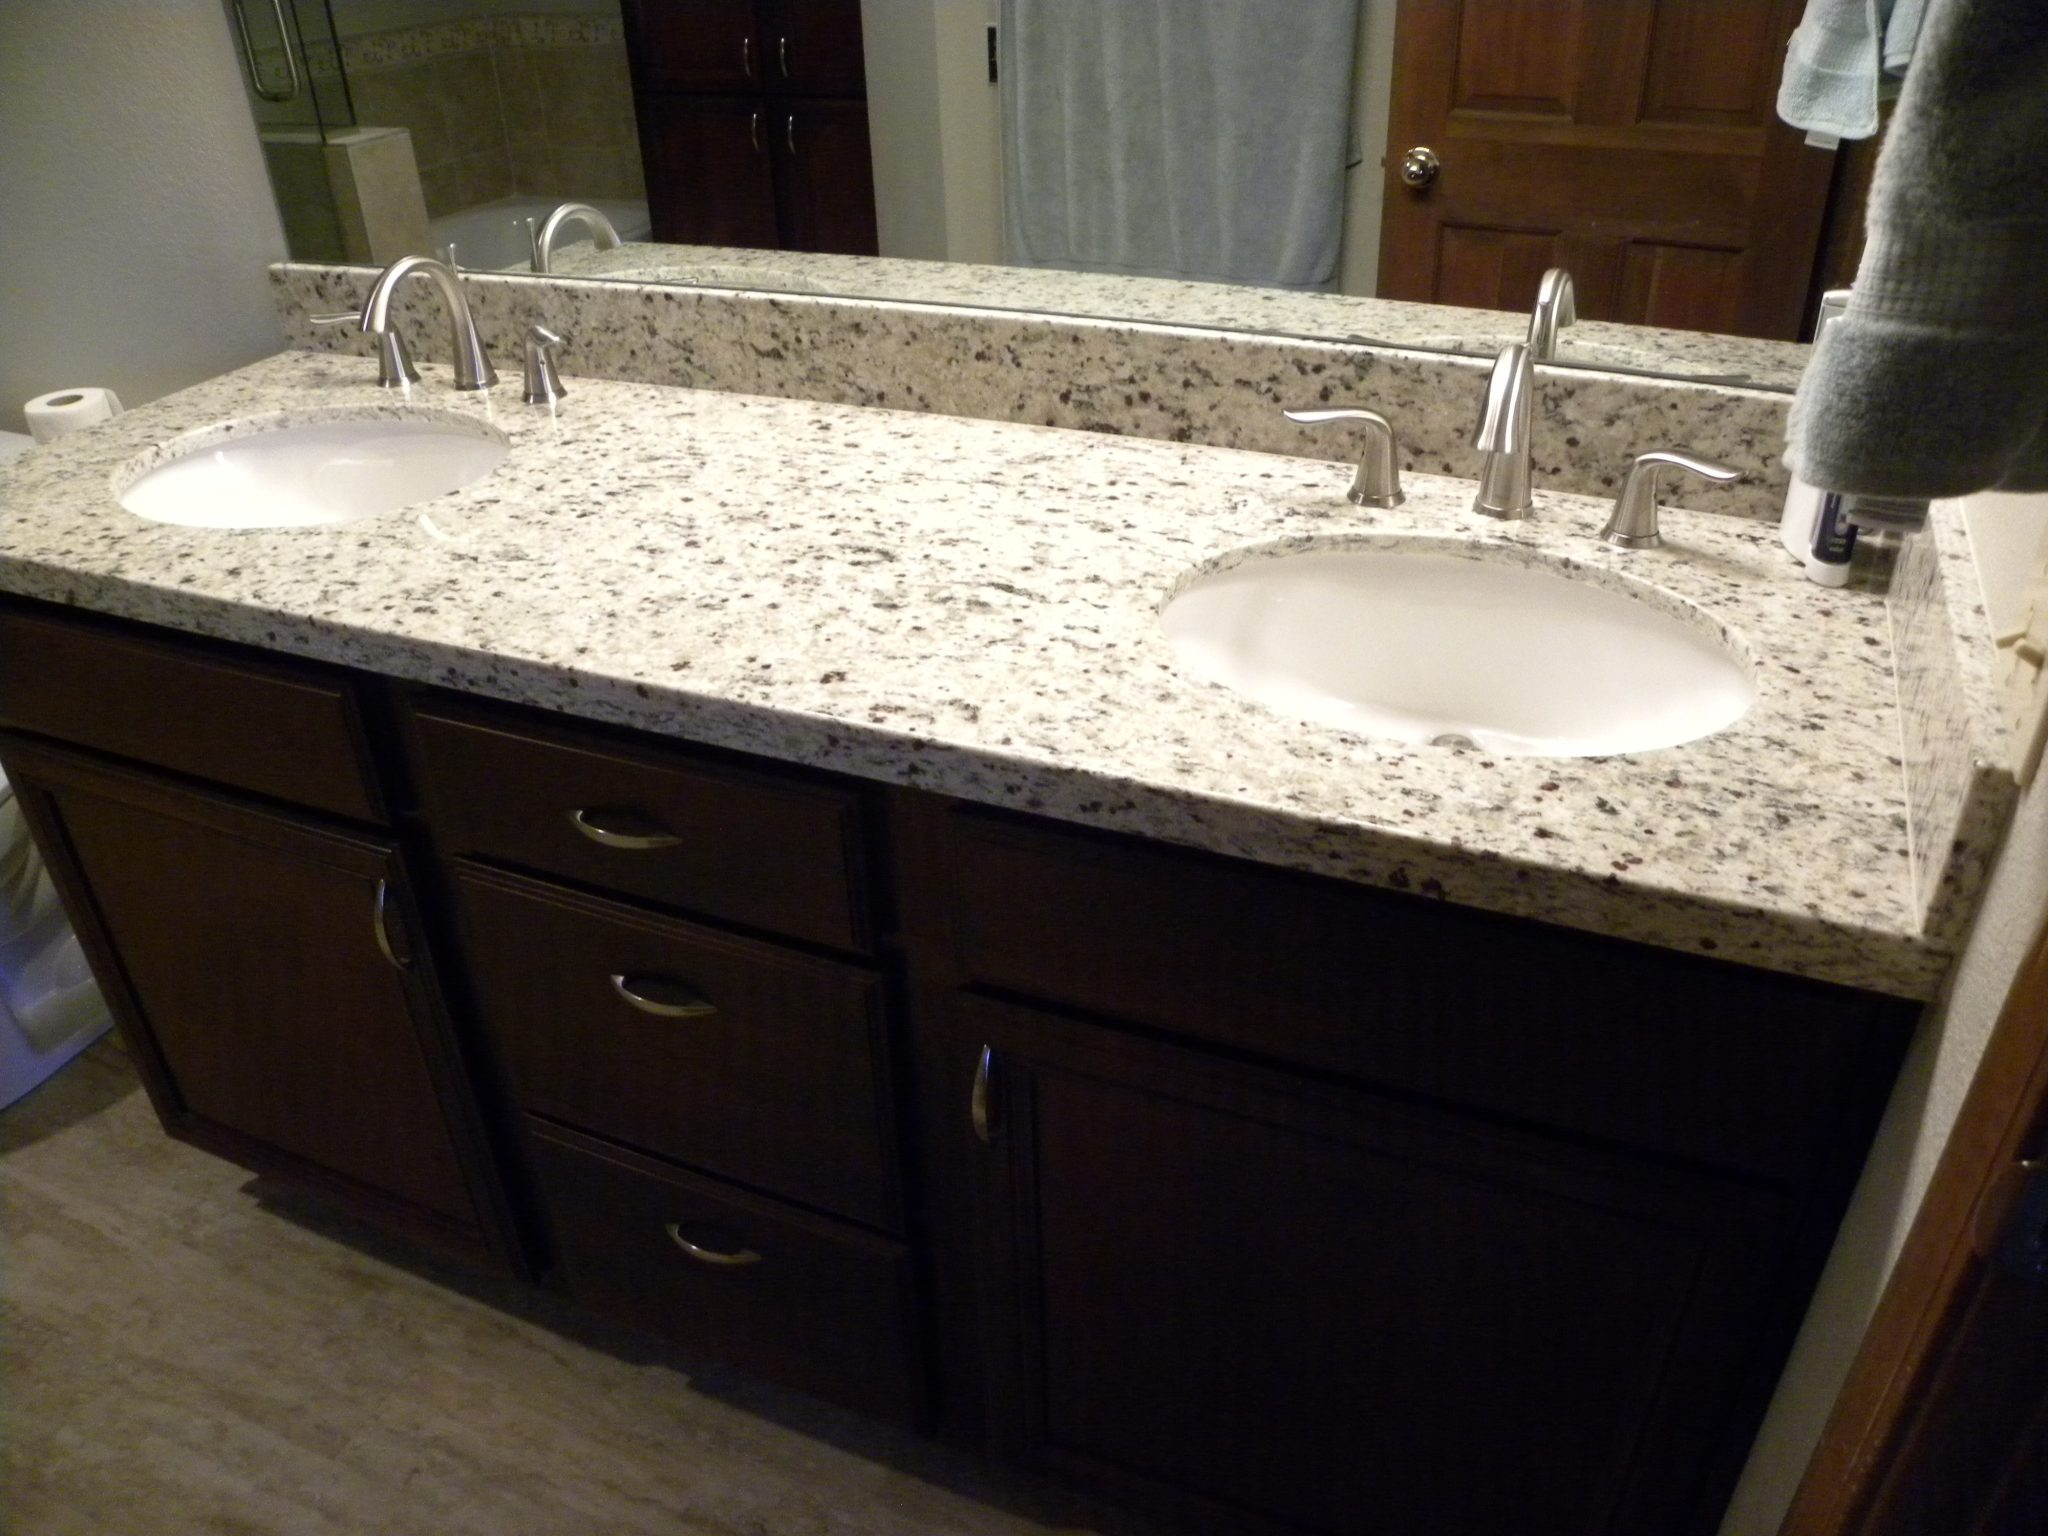 Custom designed bathroom with granite countertops and wooden cabinets